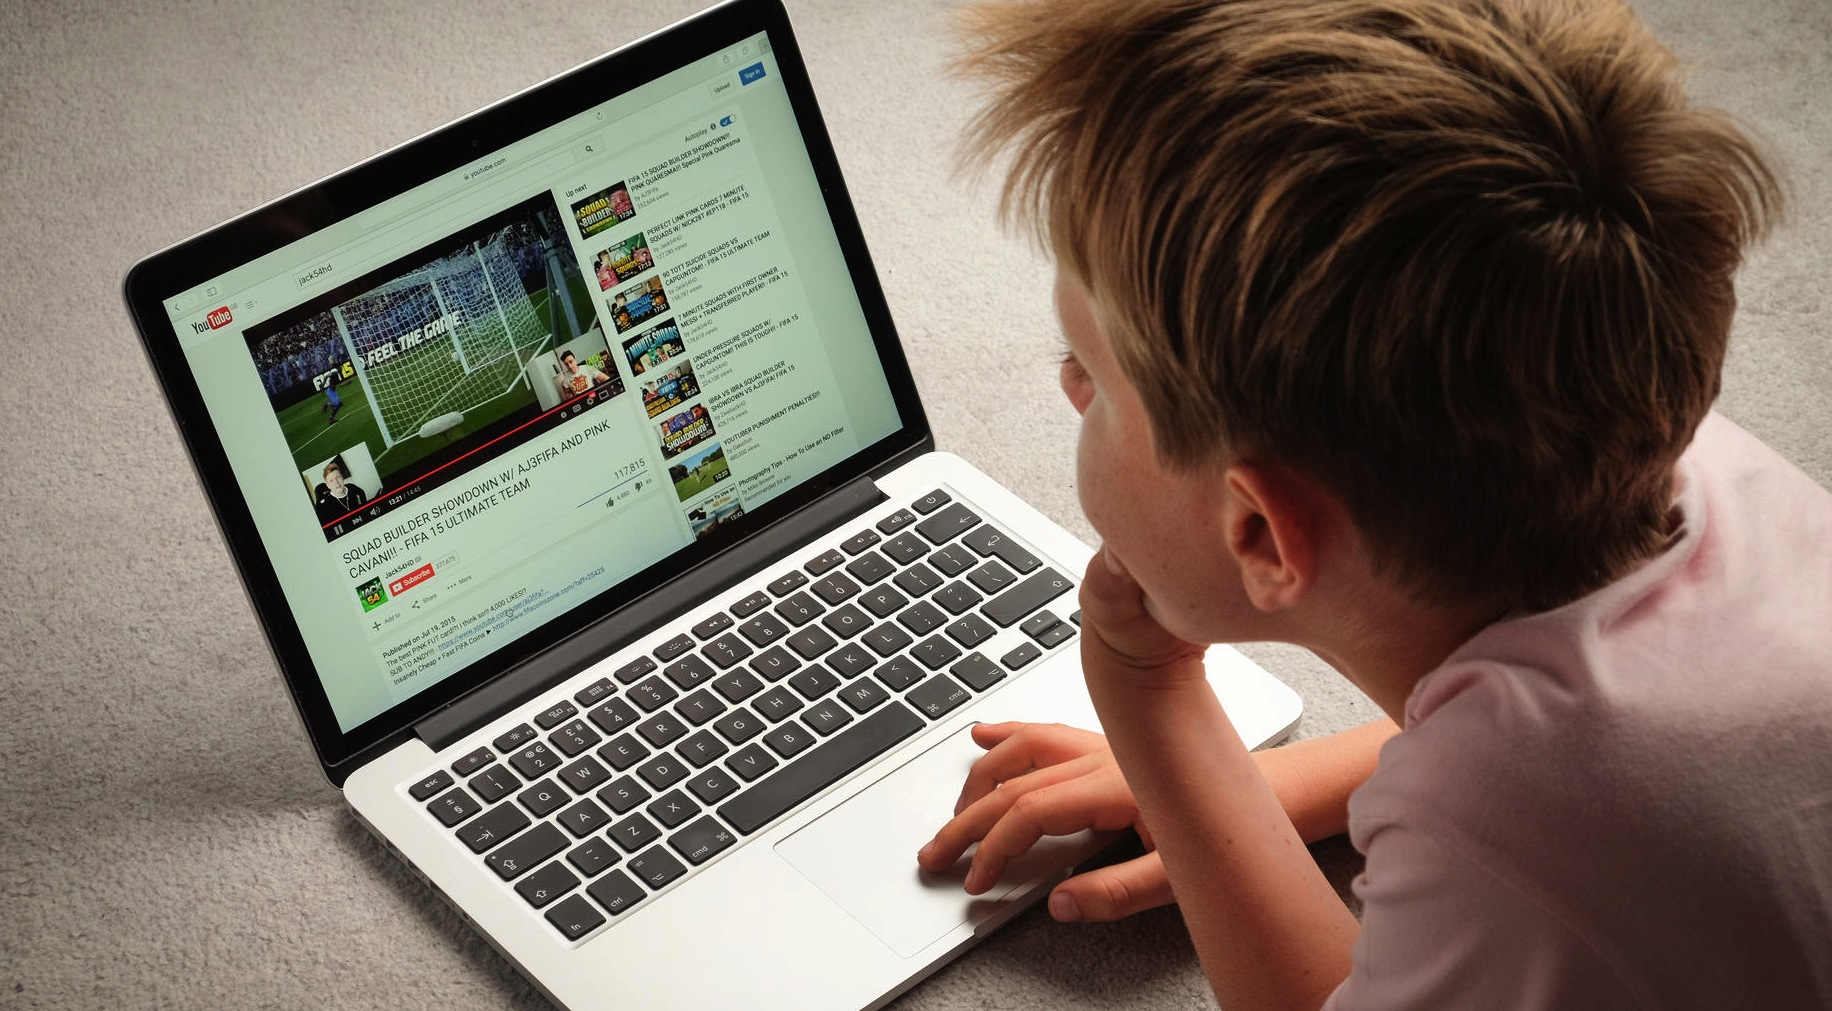 4 Ways for Parents to Keep Kids Safe on YouTube - Blog